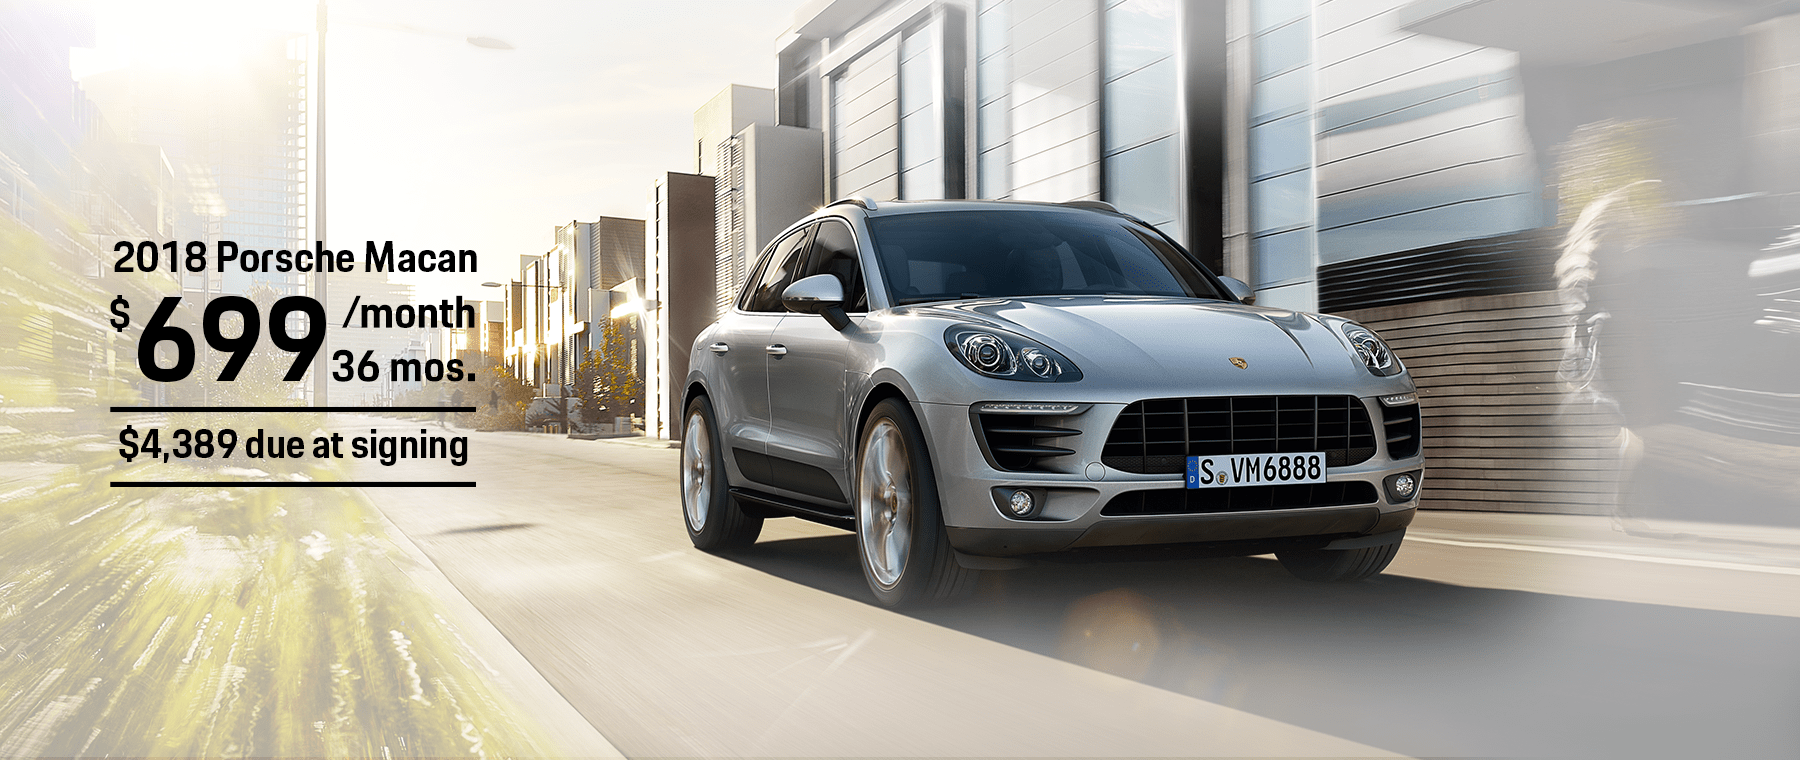 Porsche Macan Lease Offer